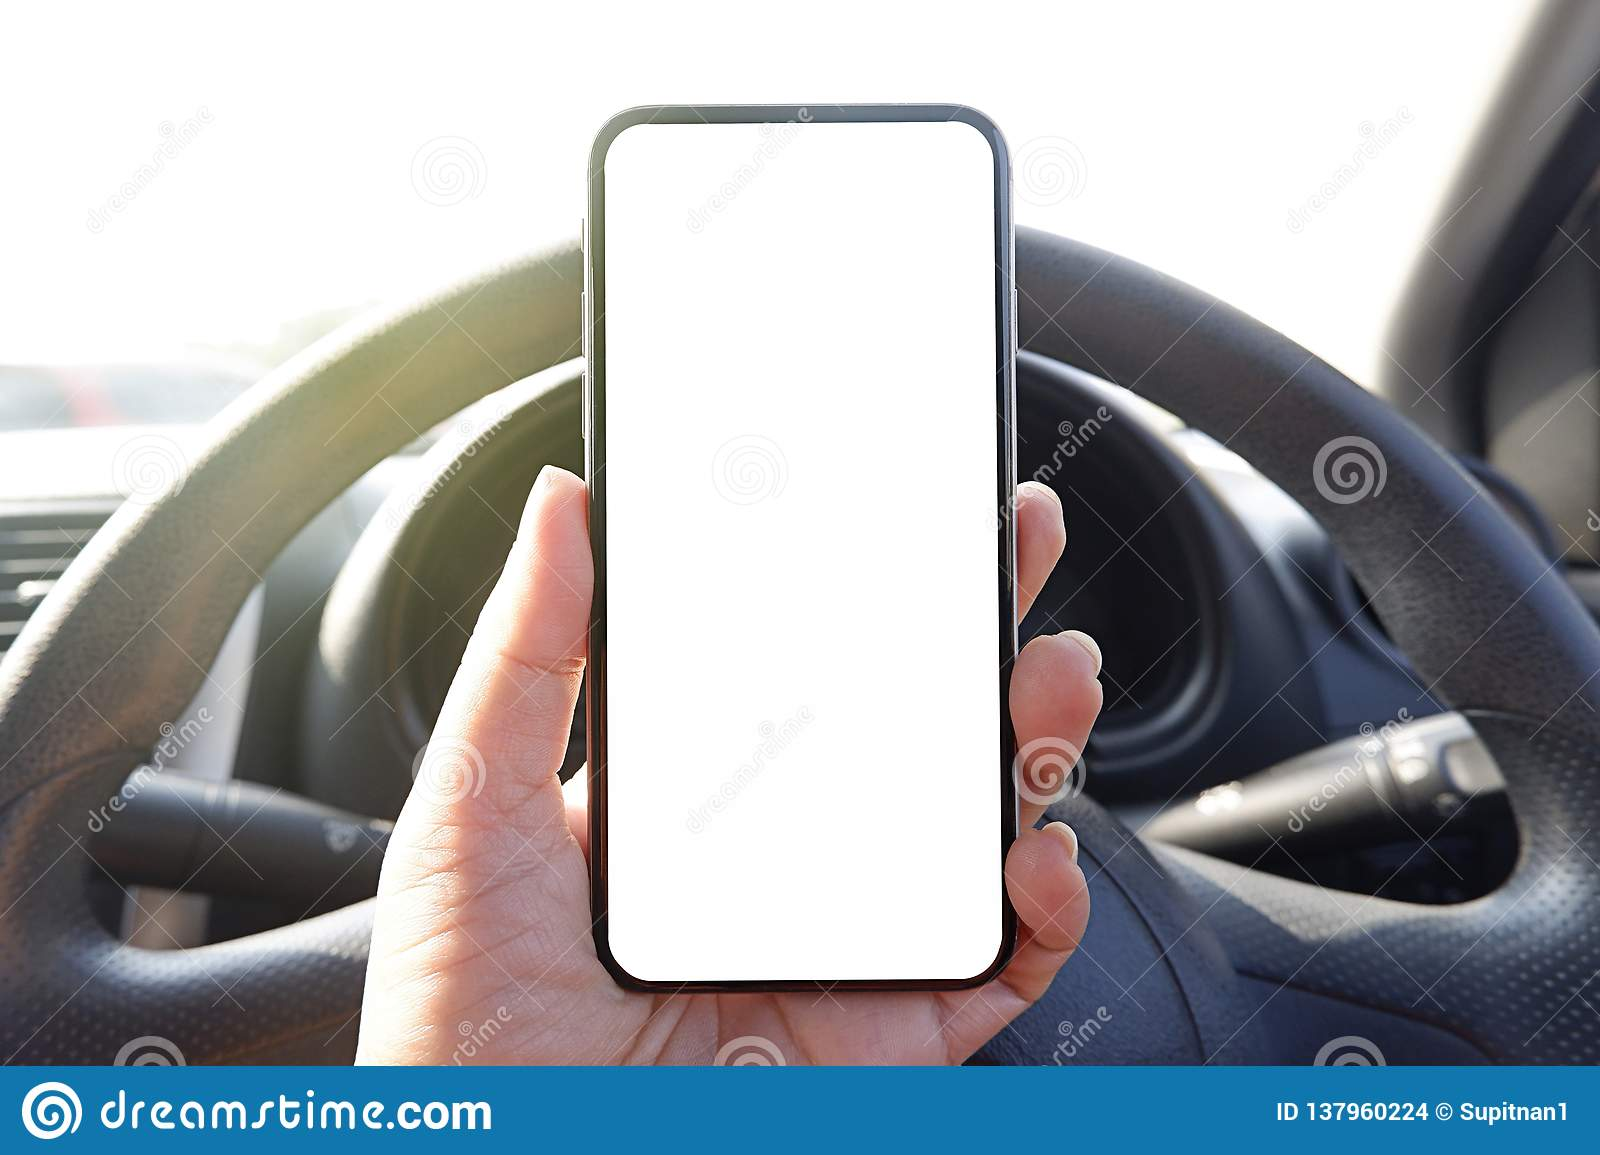 mock up driver hand holding phone in car empty clear screen for text- advertise copy-space background- image